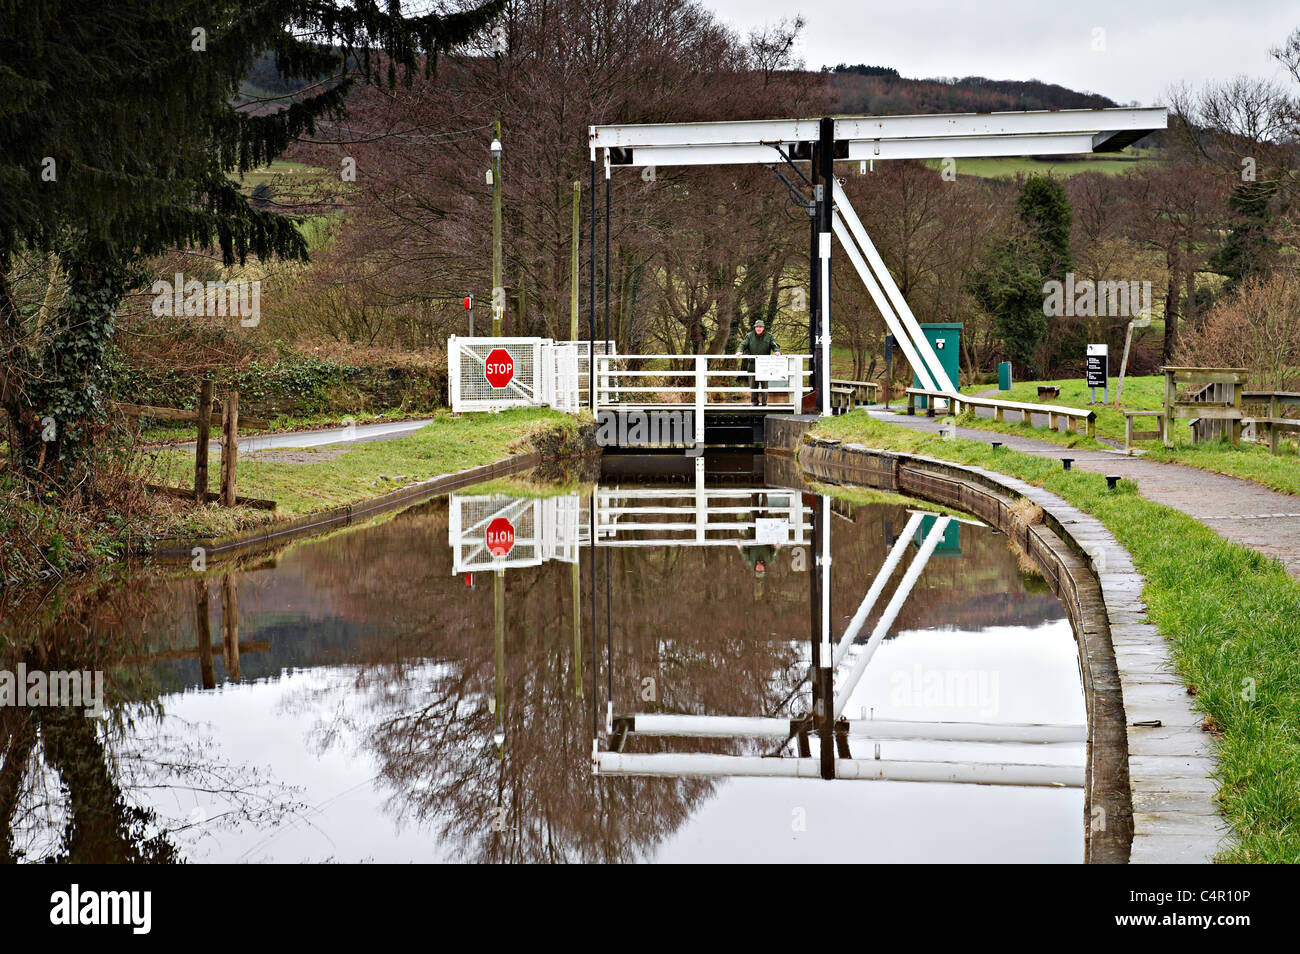 Monmouthshire and Brecon Canal, Talybont-on-Usk, Brecon Beacons National Park, Wales - Stock Image